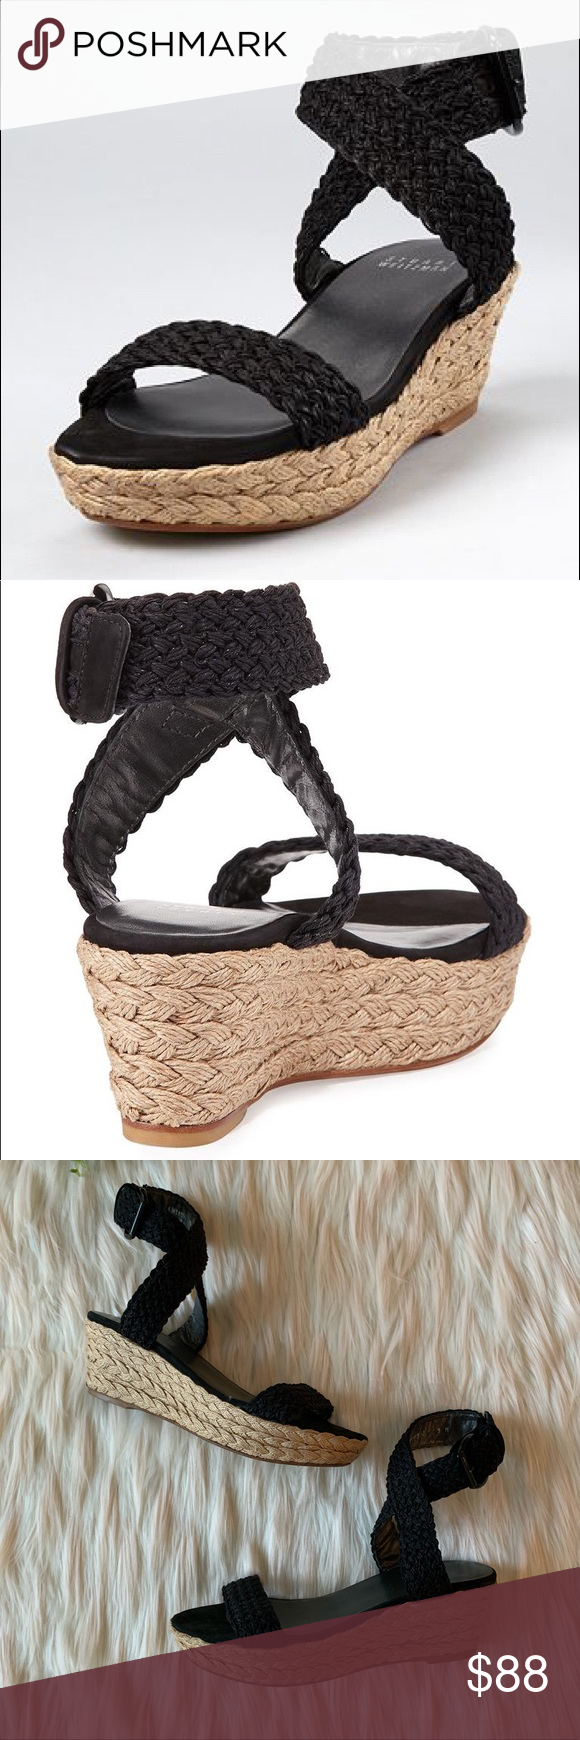 1335d44d6c NIB Ugg Maddie Wedge Sandal The UGG Maddie Wedge Sandal features a cushioned  cork wedge that provides stability with slim leather str…